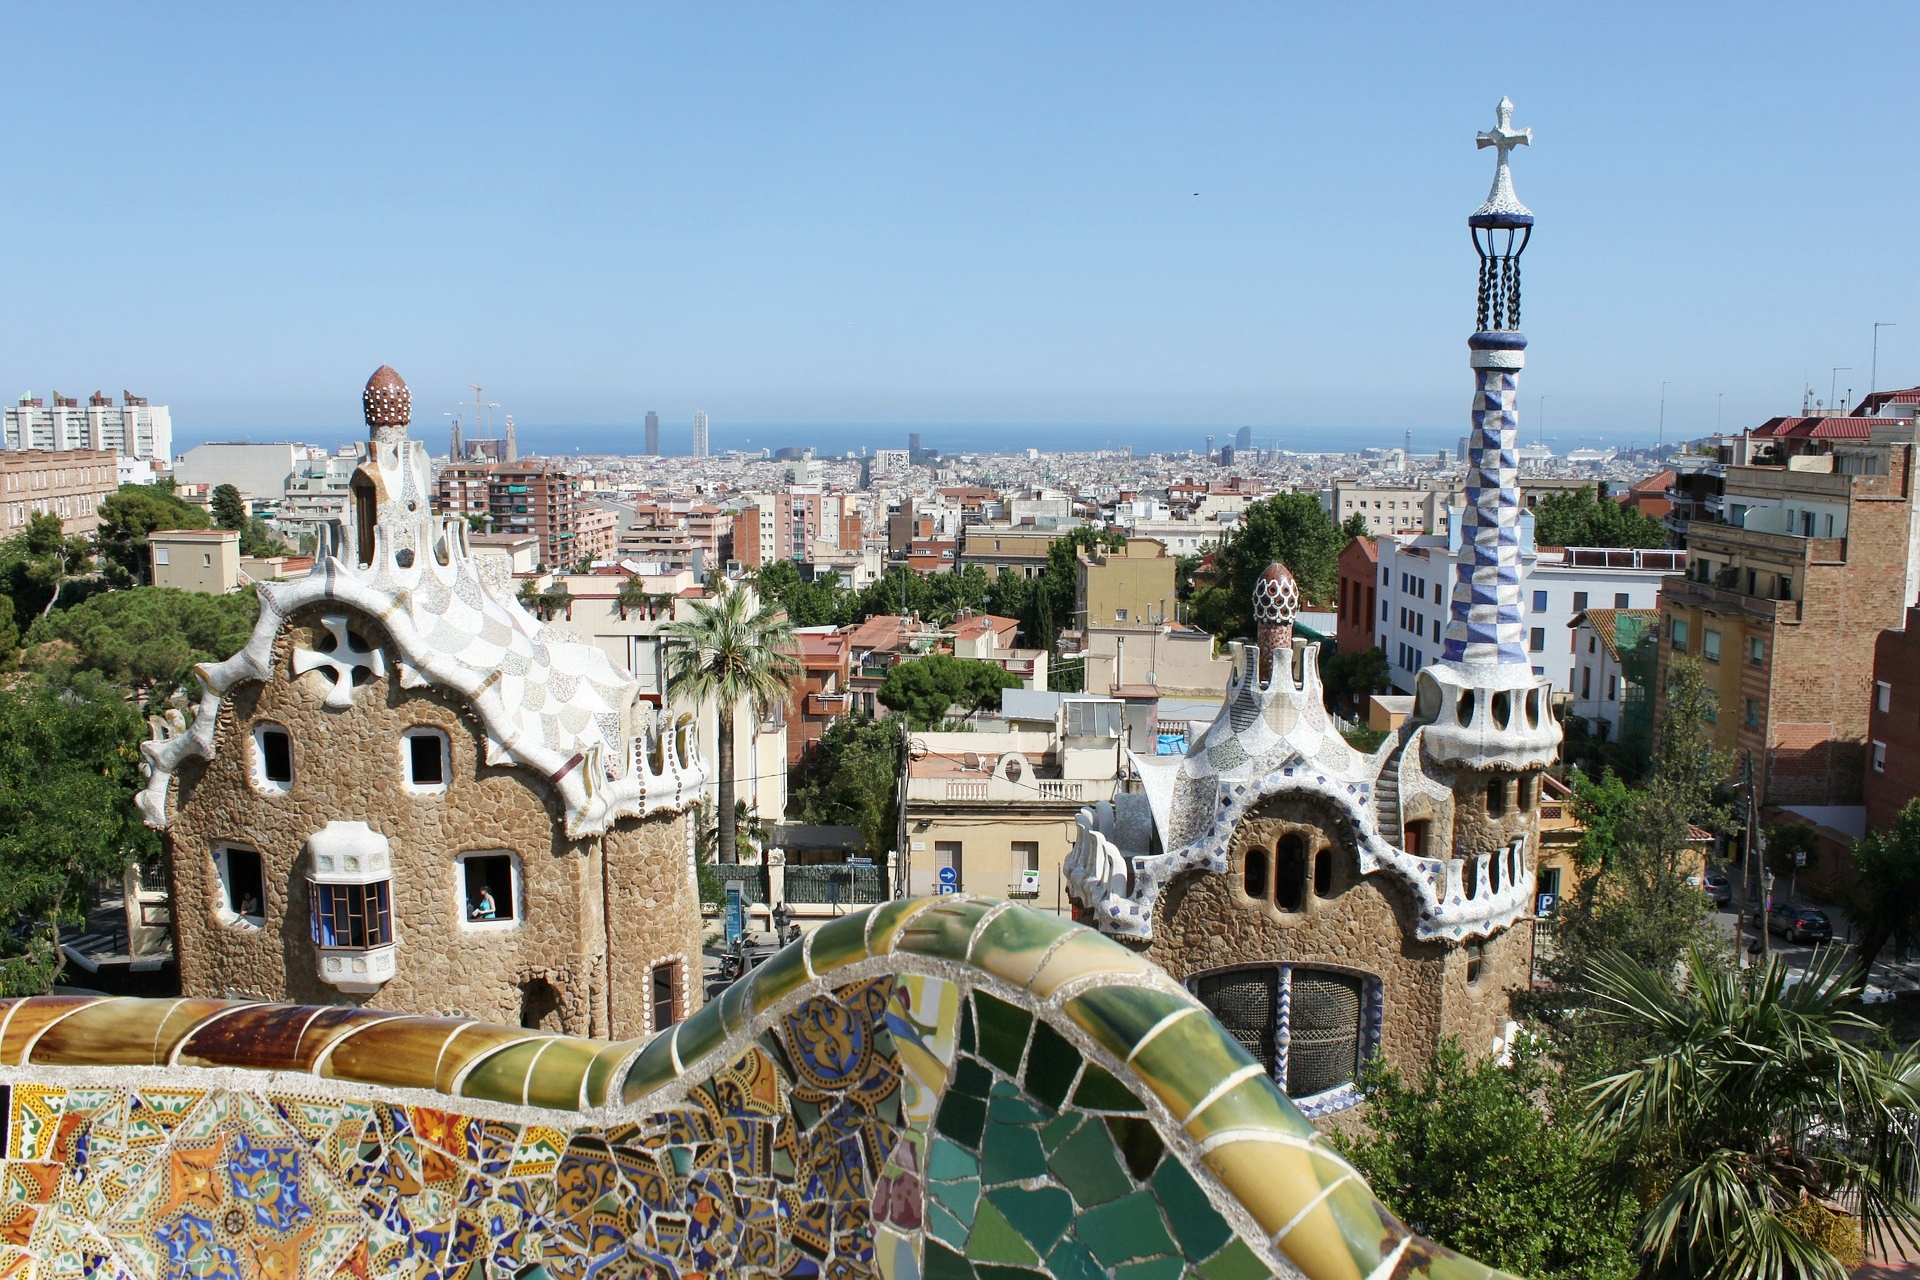 Gaudi designed the Park Güell, perhaps Barcelona's most iconic postcard image.